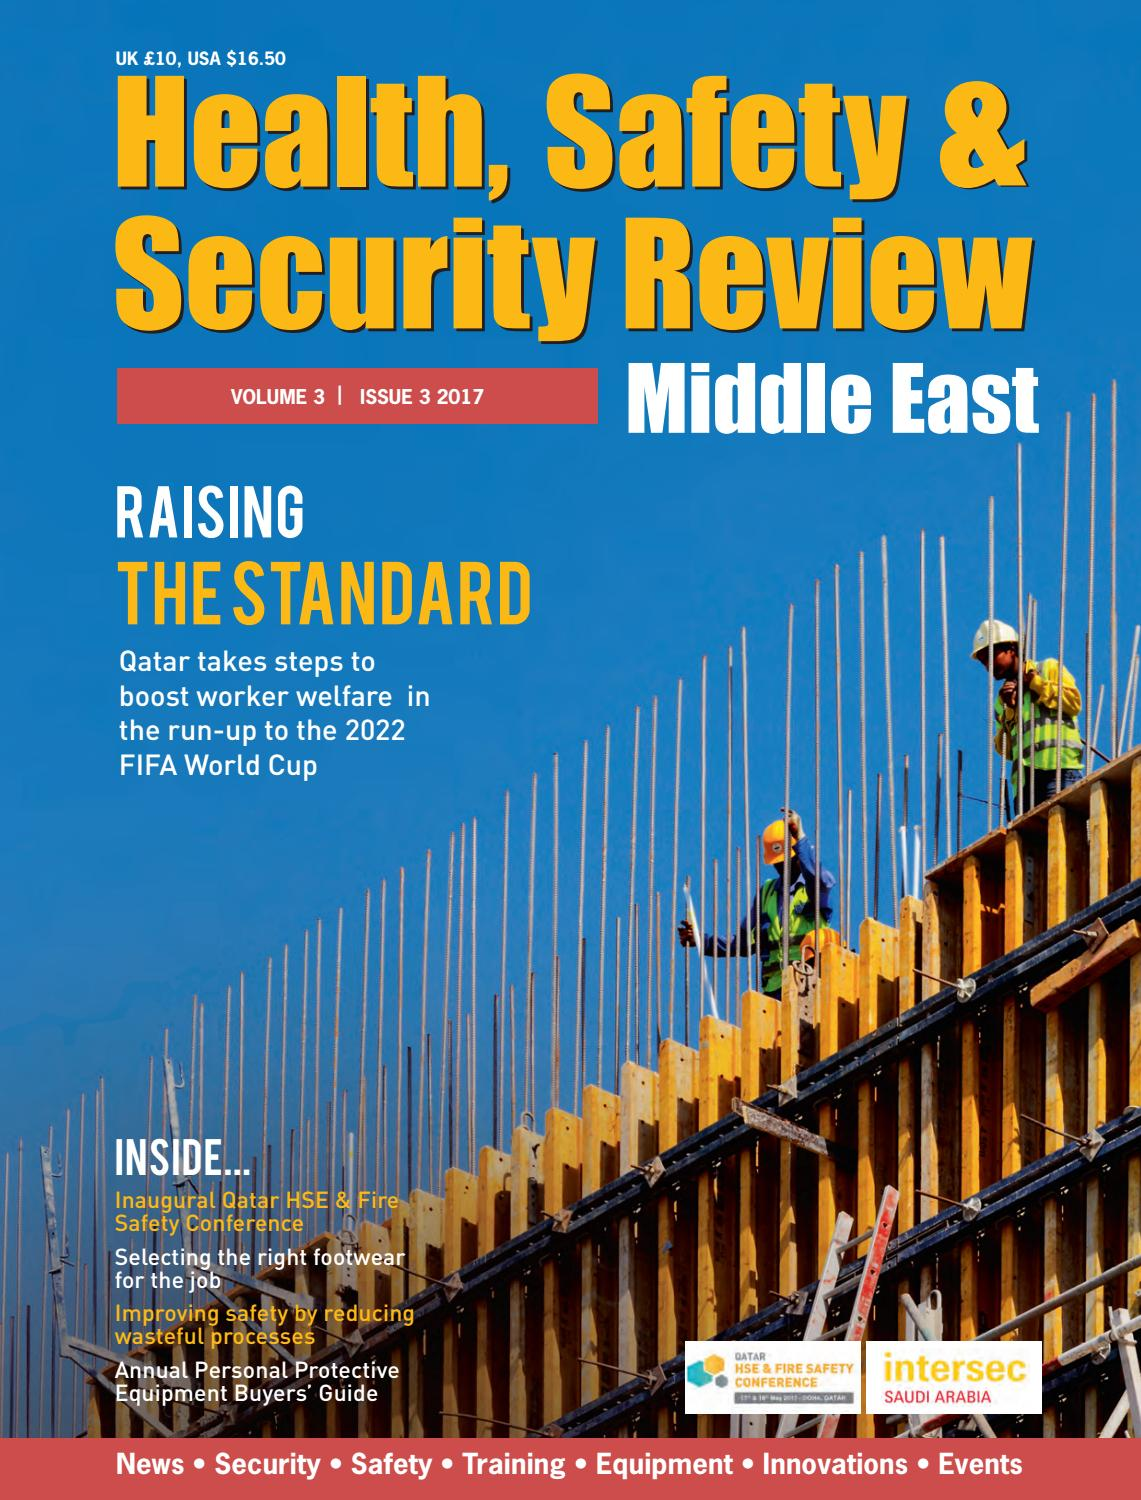 Health Safety  Security Review issue 3 2017 by Alain Charles Publishing  Issuu